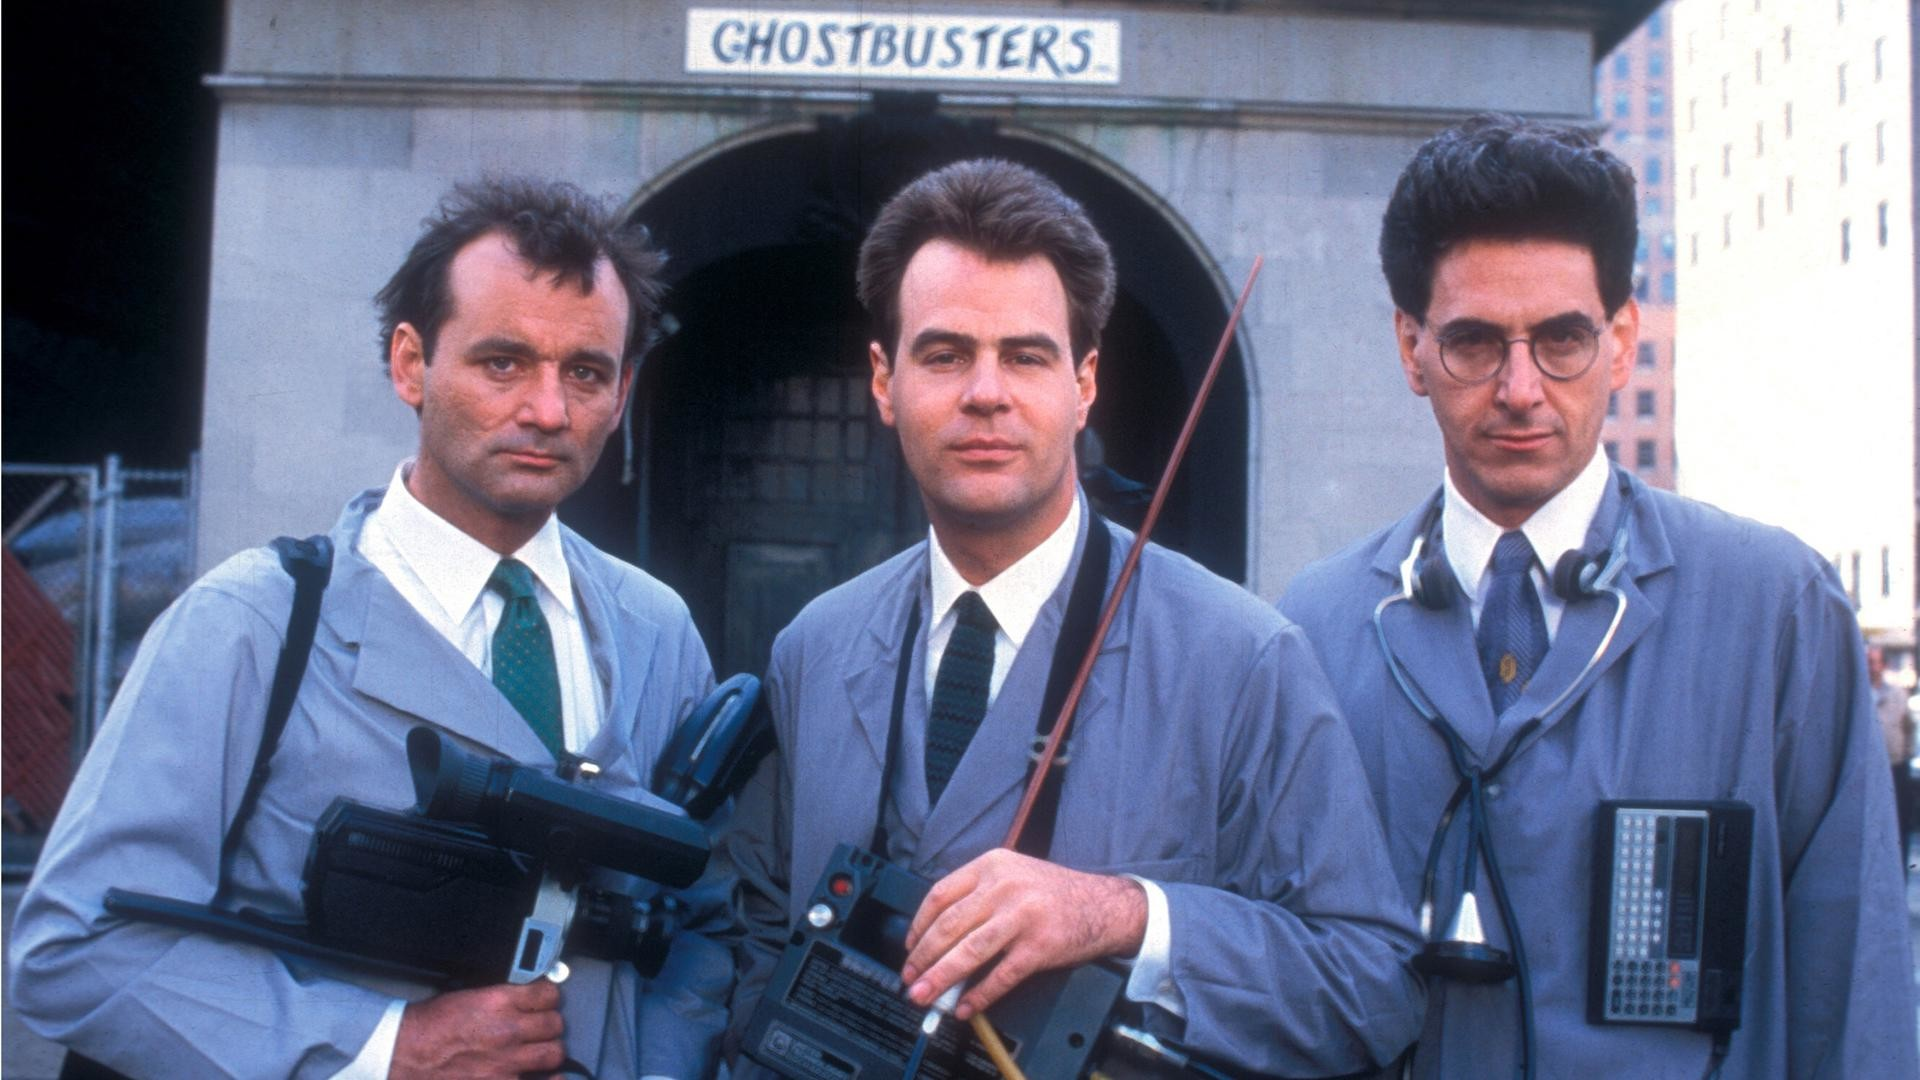 1920x1080 Dear Hollywood: Why I am begging you not to make a Ghostbusters 3